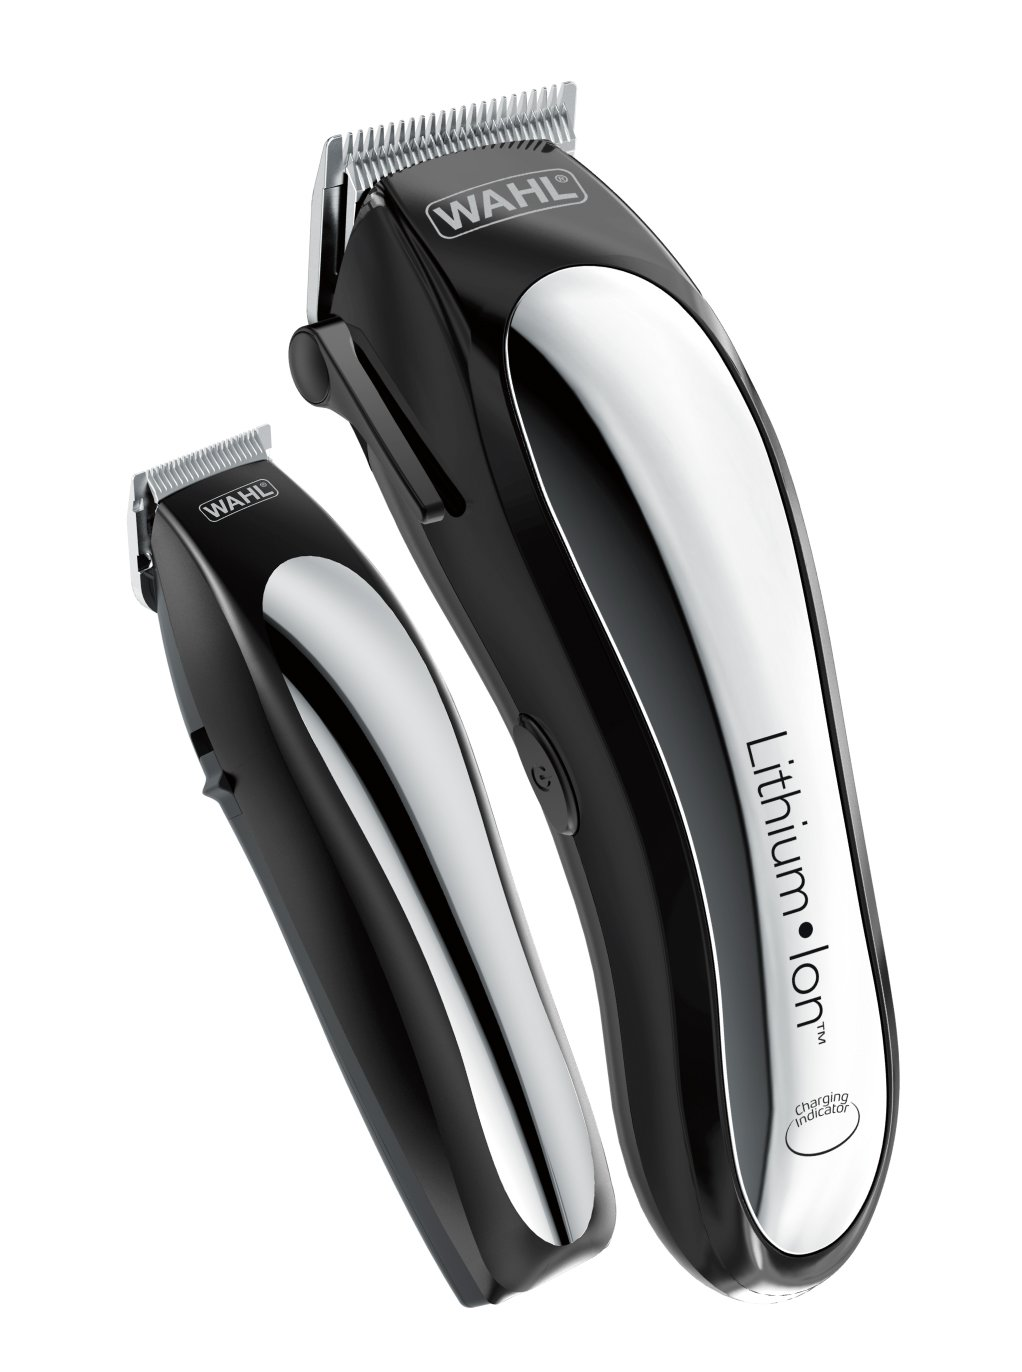 Best Cordless Hair Clippers 3